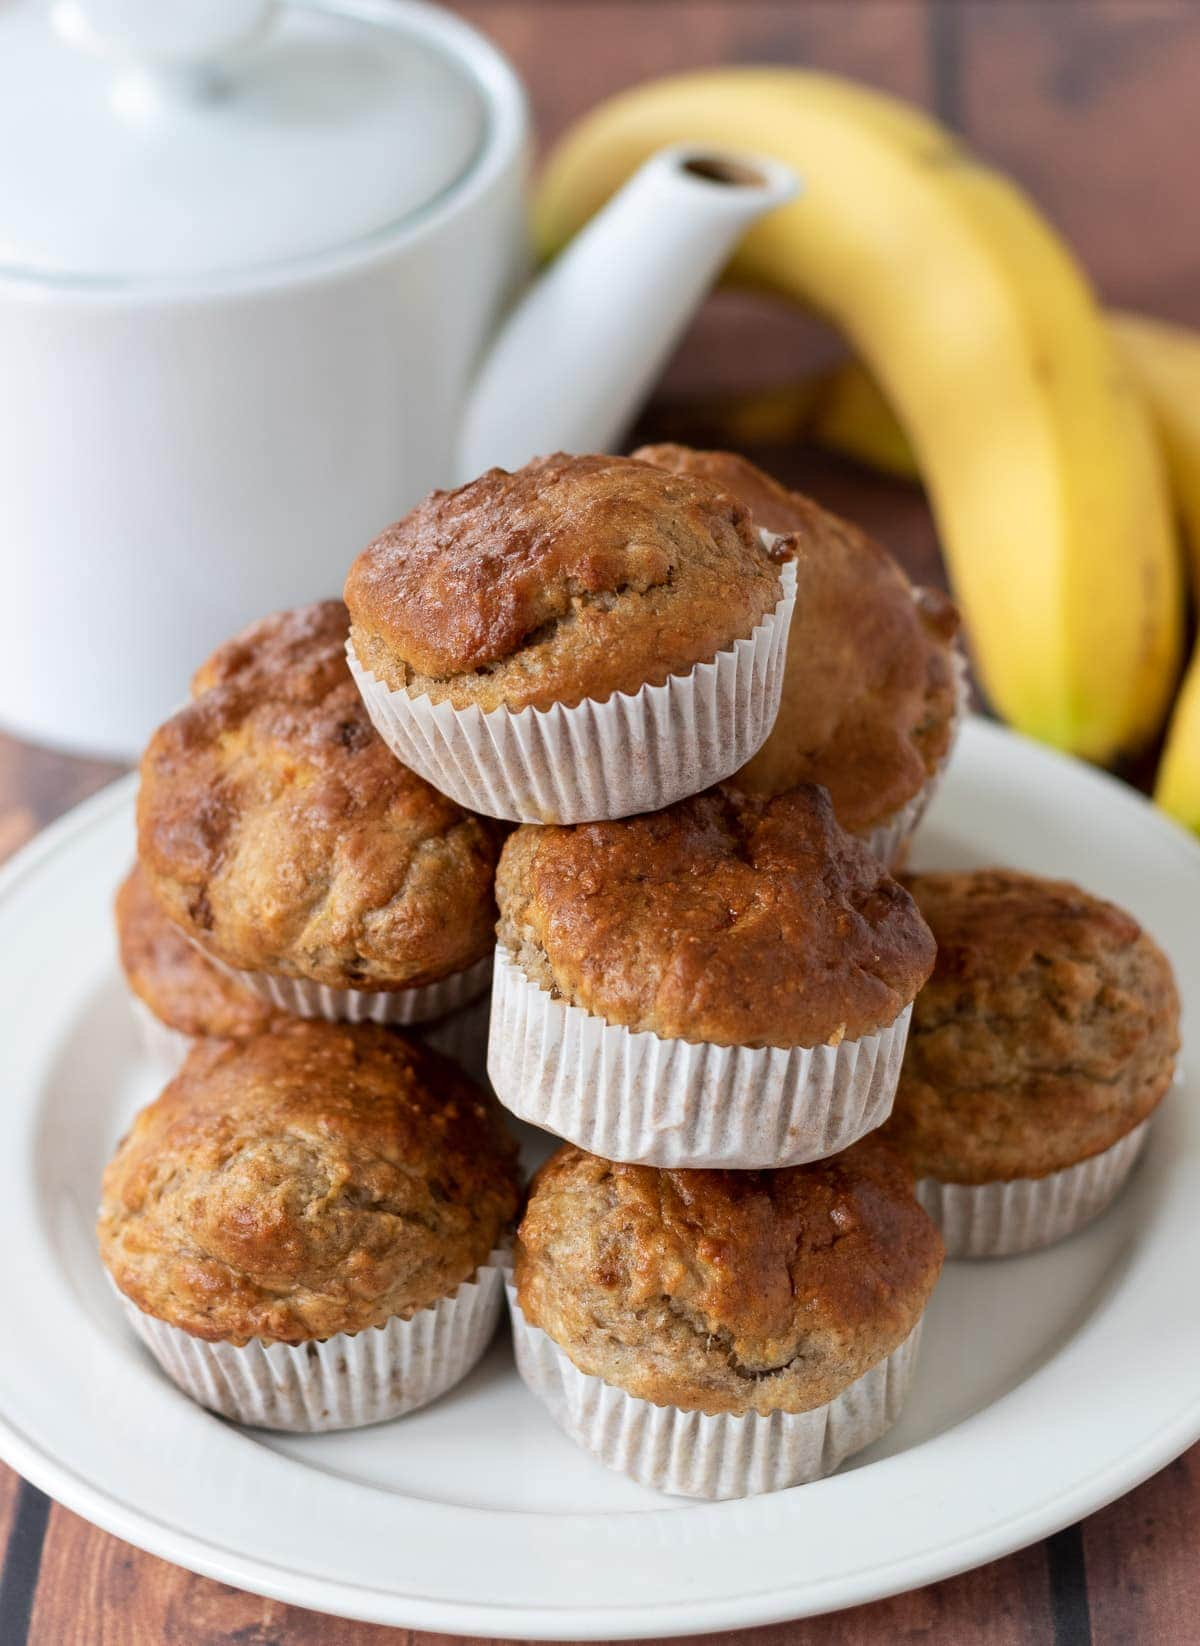 Banana bread muffins stacked on a plate with a tea pot and two bananas in the background.